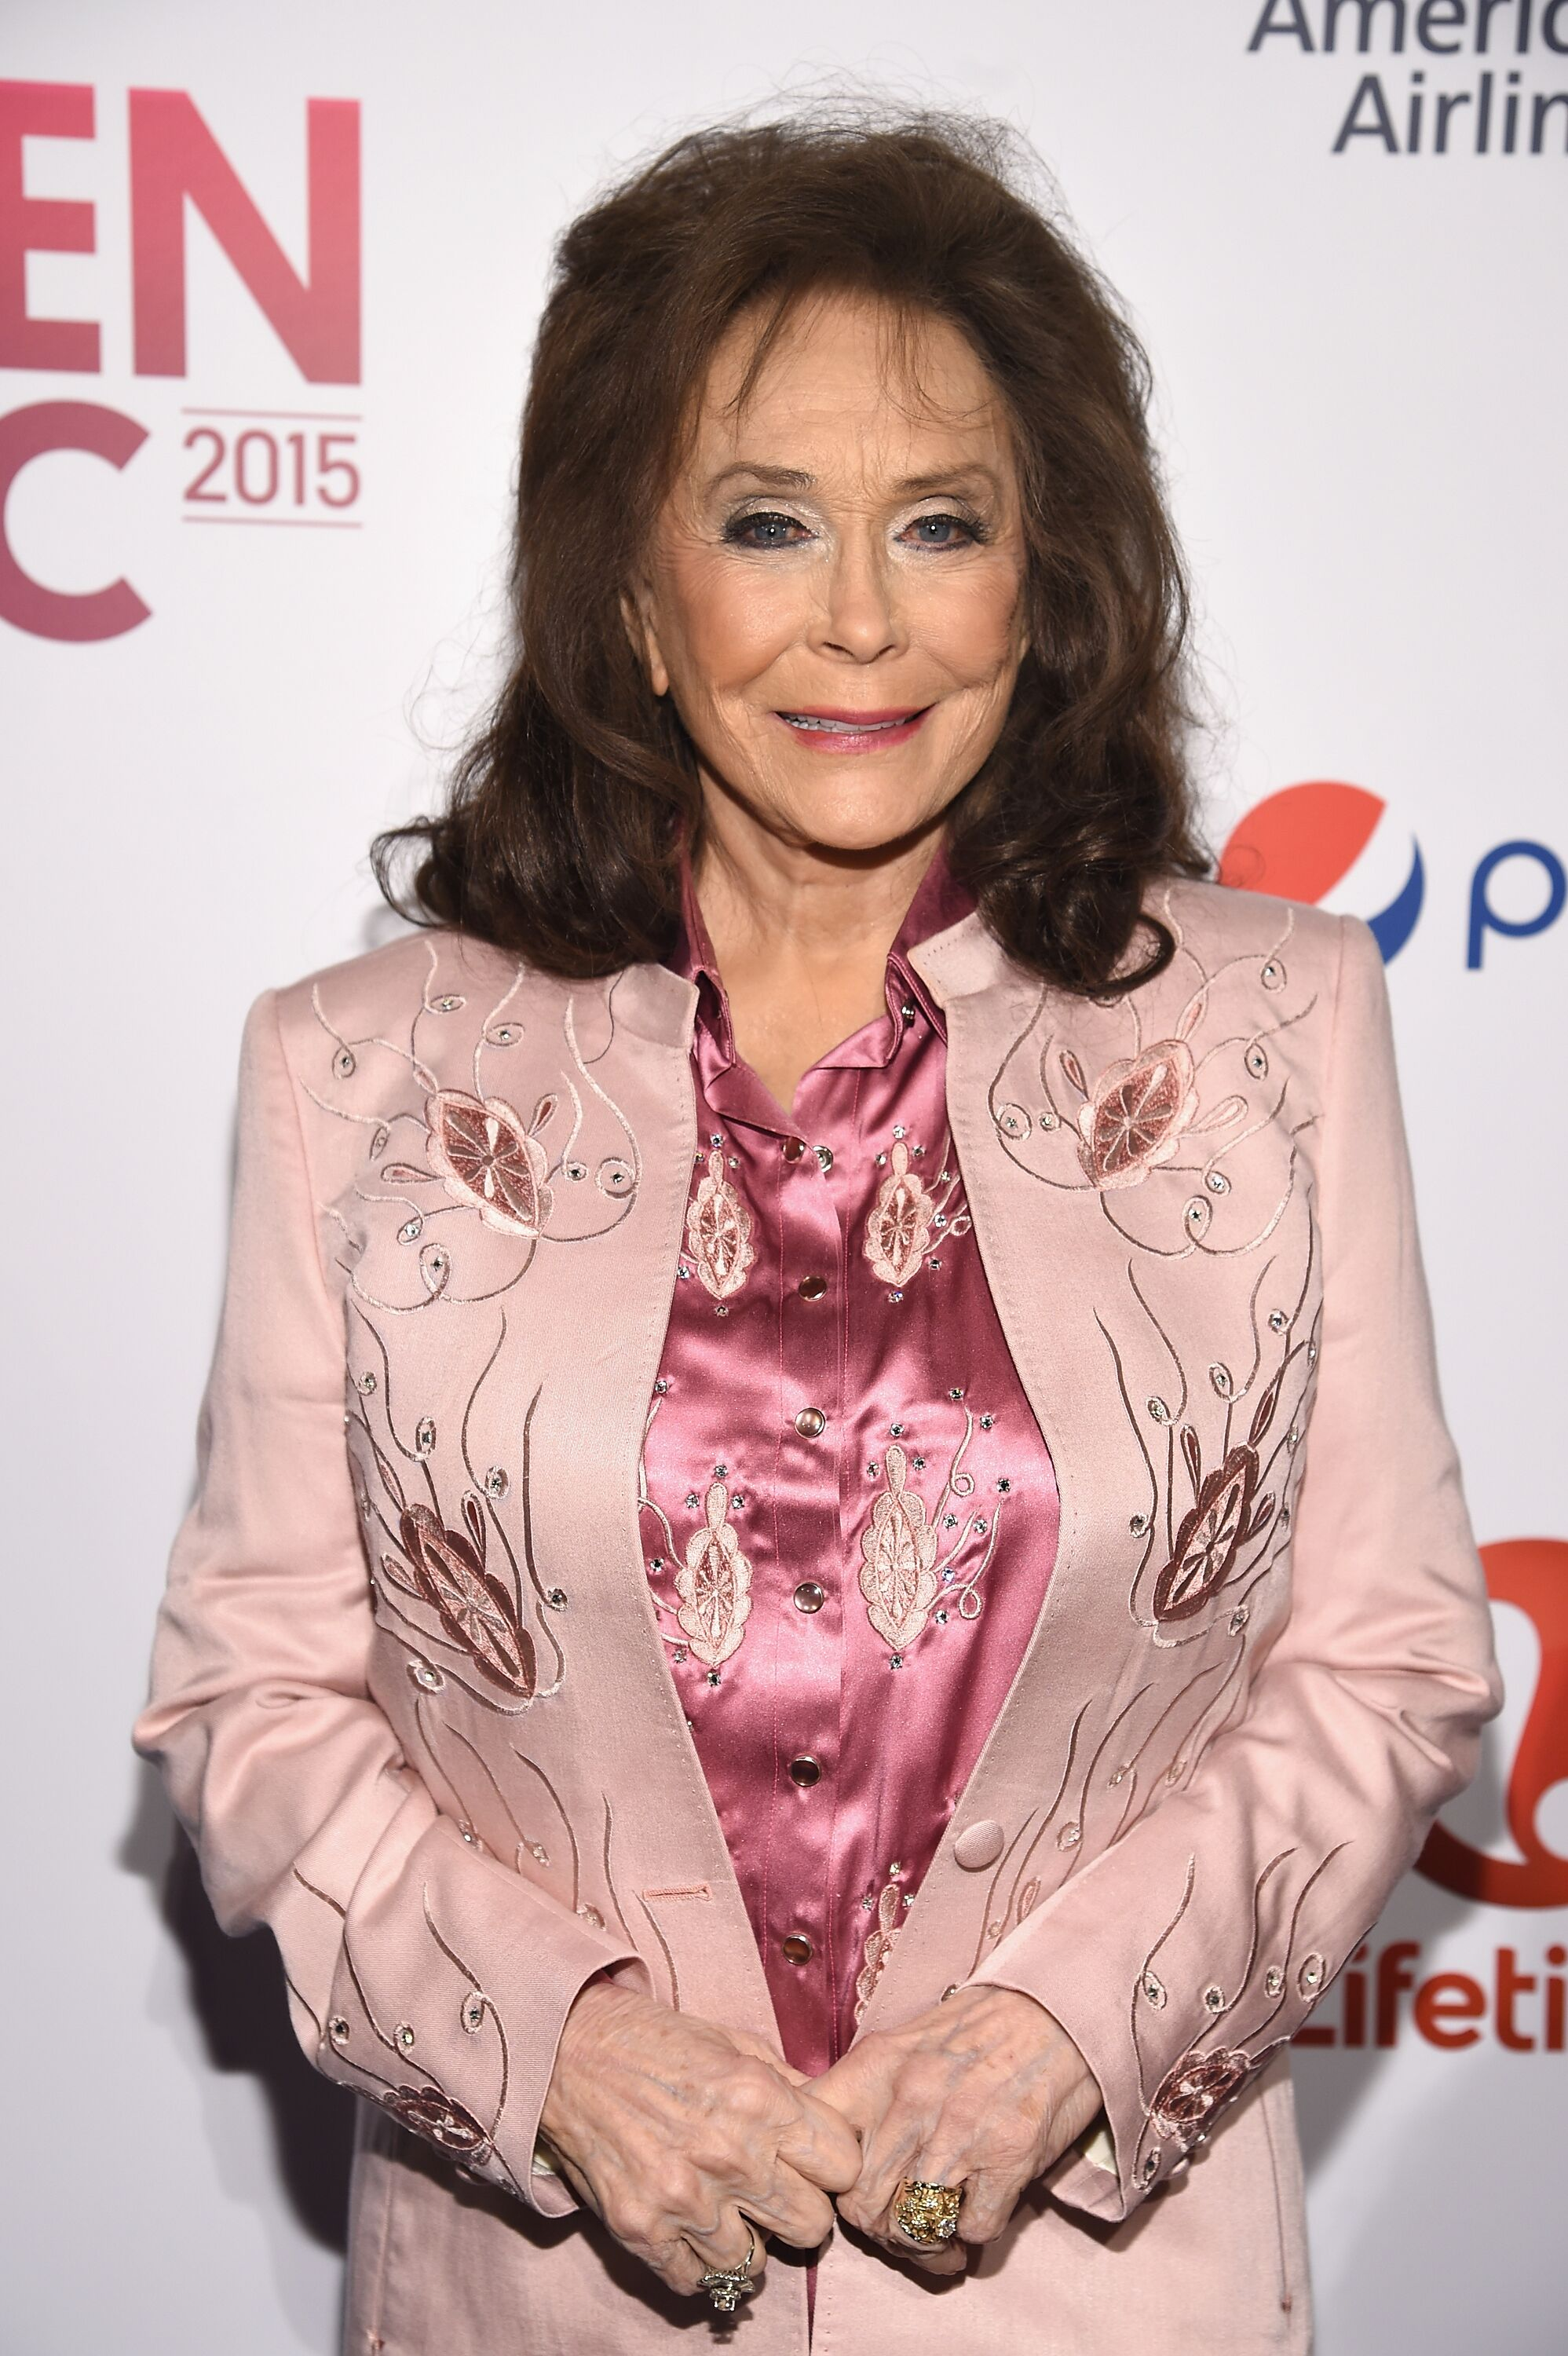 Loretta Lynn attends Billboard Women In Music 2015 on Lifetime at Cipriani 42nd Street on December 11, 2015 in New York City.   Source: Getty Images